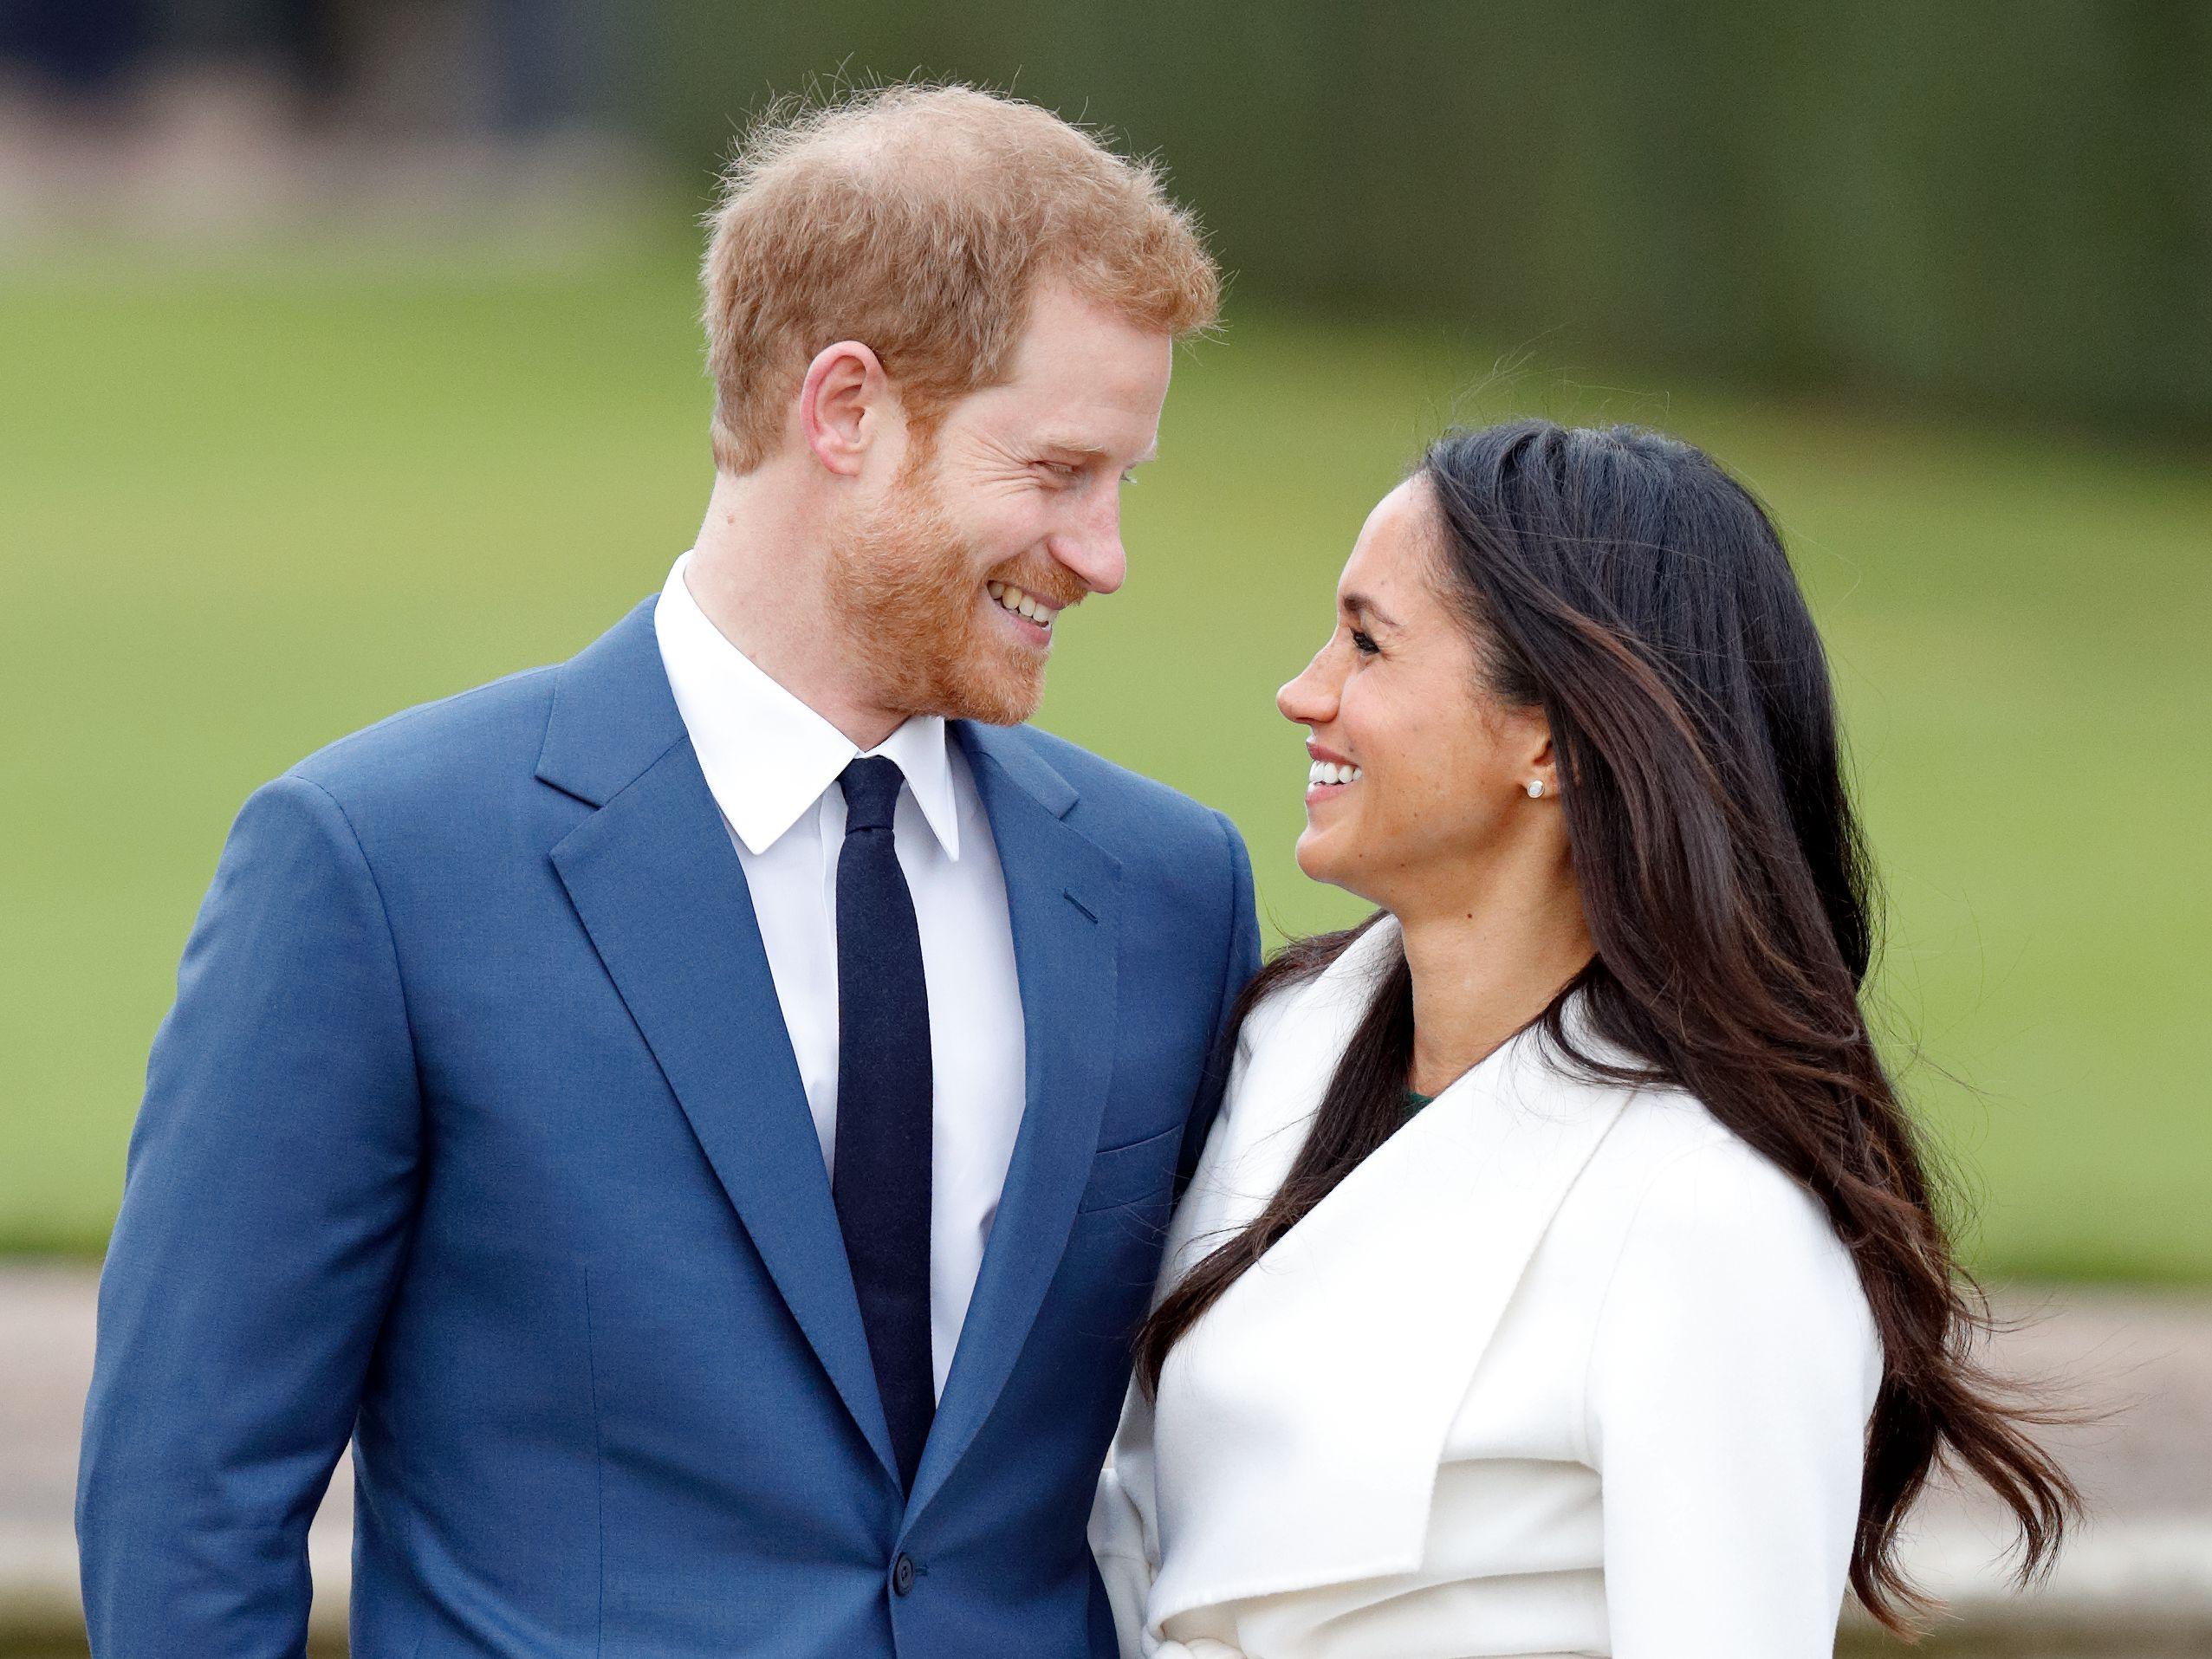 Royal Wedding Harry And Meghan.Royal Wedding Schedule An Hour By Hour Game Plan For Prince Harry